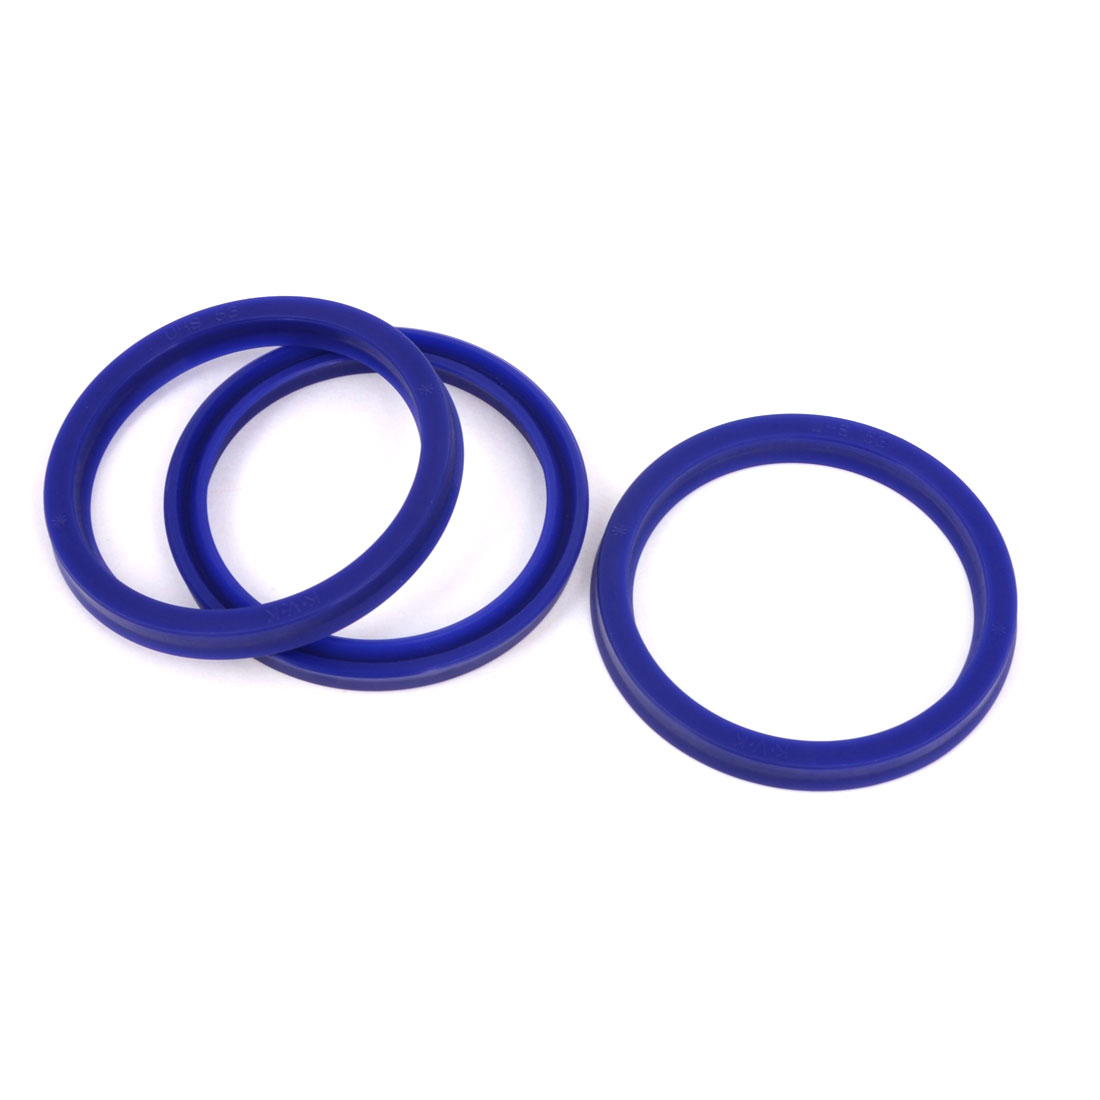 3 Pcs Metric Shaft Seal Double Lip TC Spring Oil Seals for Electric Hammer